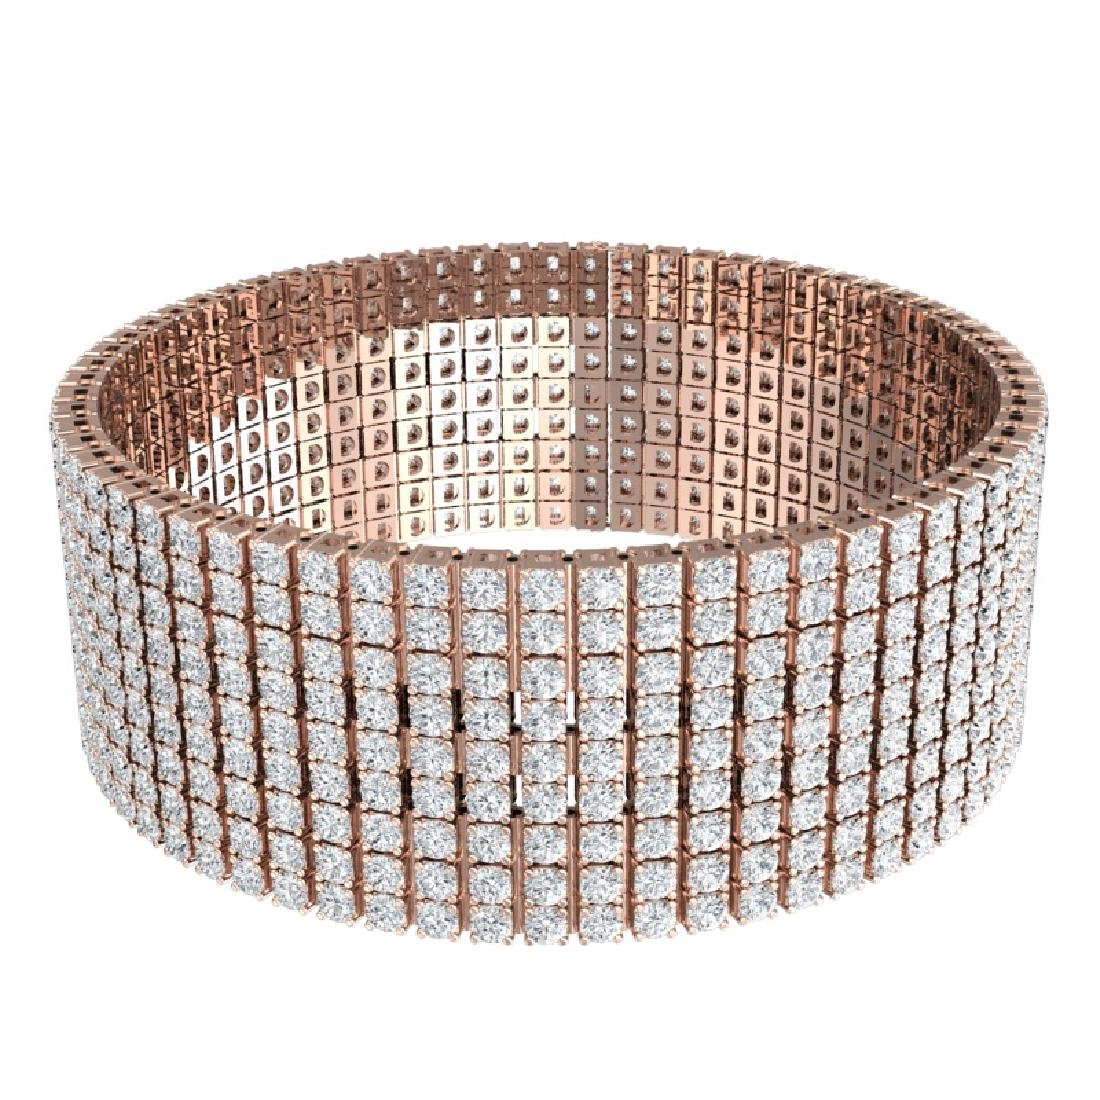 40 CTW Certified VS/SI Diamond Bracelet 18K Rose Gold - 3